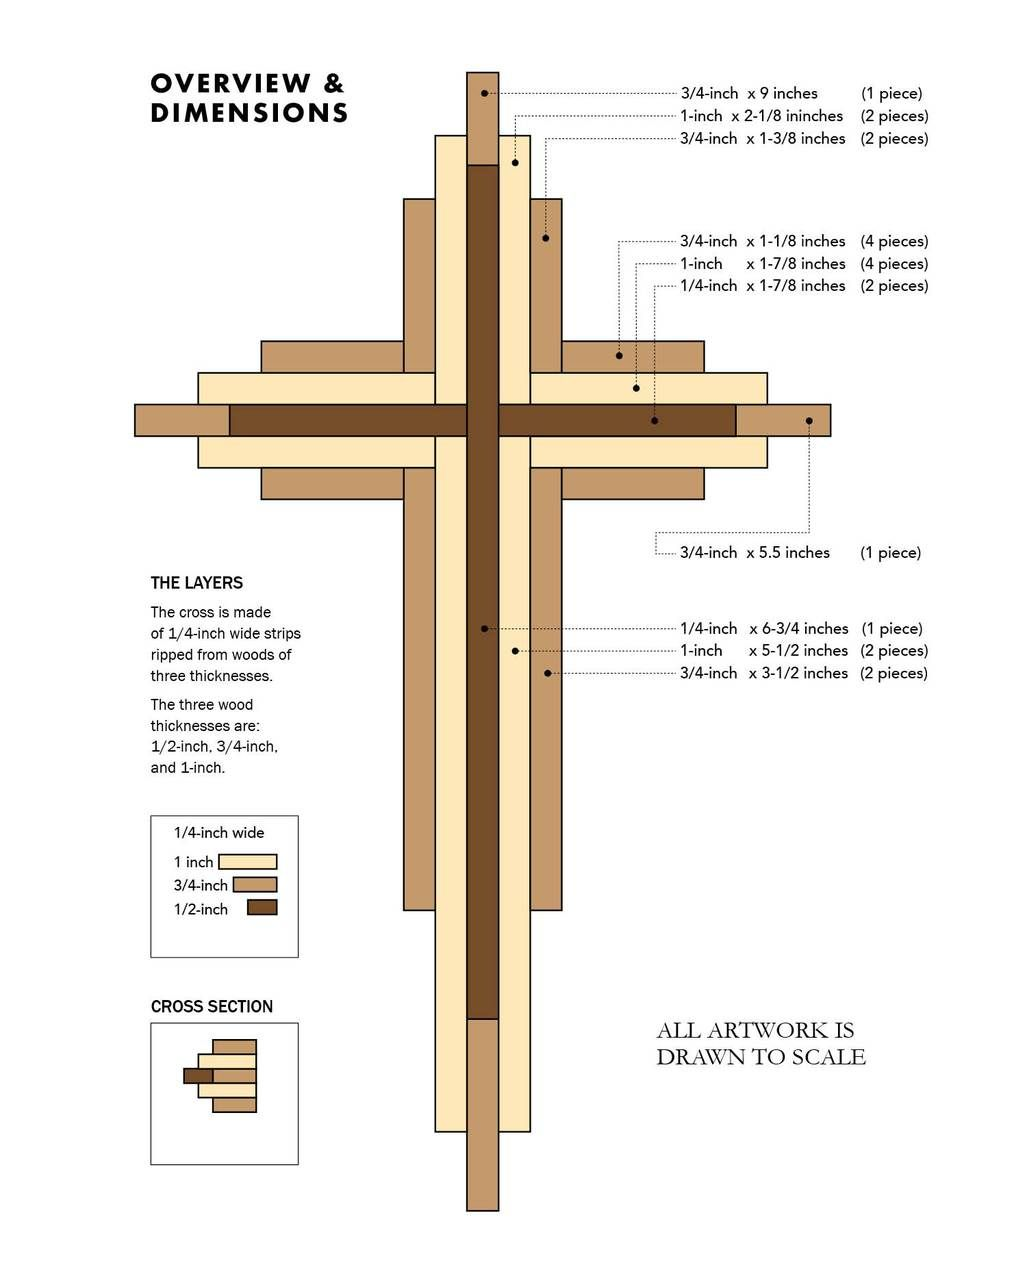 diy wooden cross designs, DIY 9 inch Wood Cross Plans Easy woodworking projects